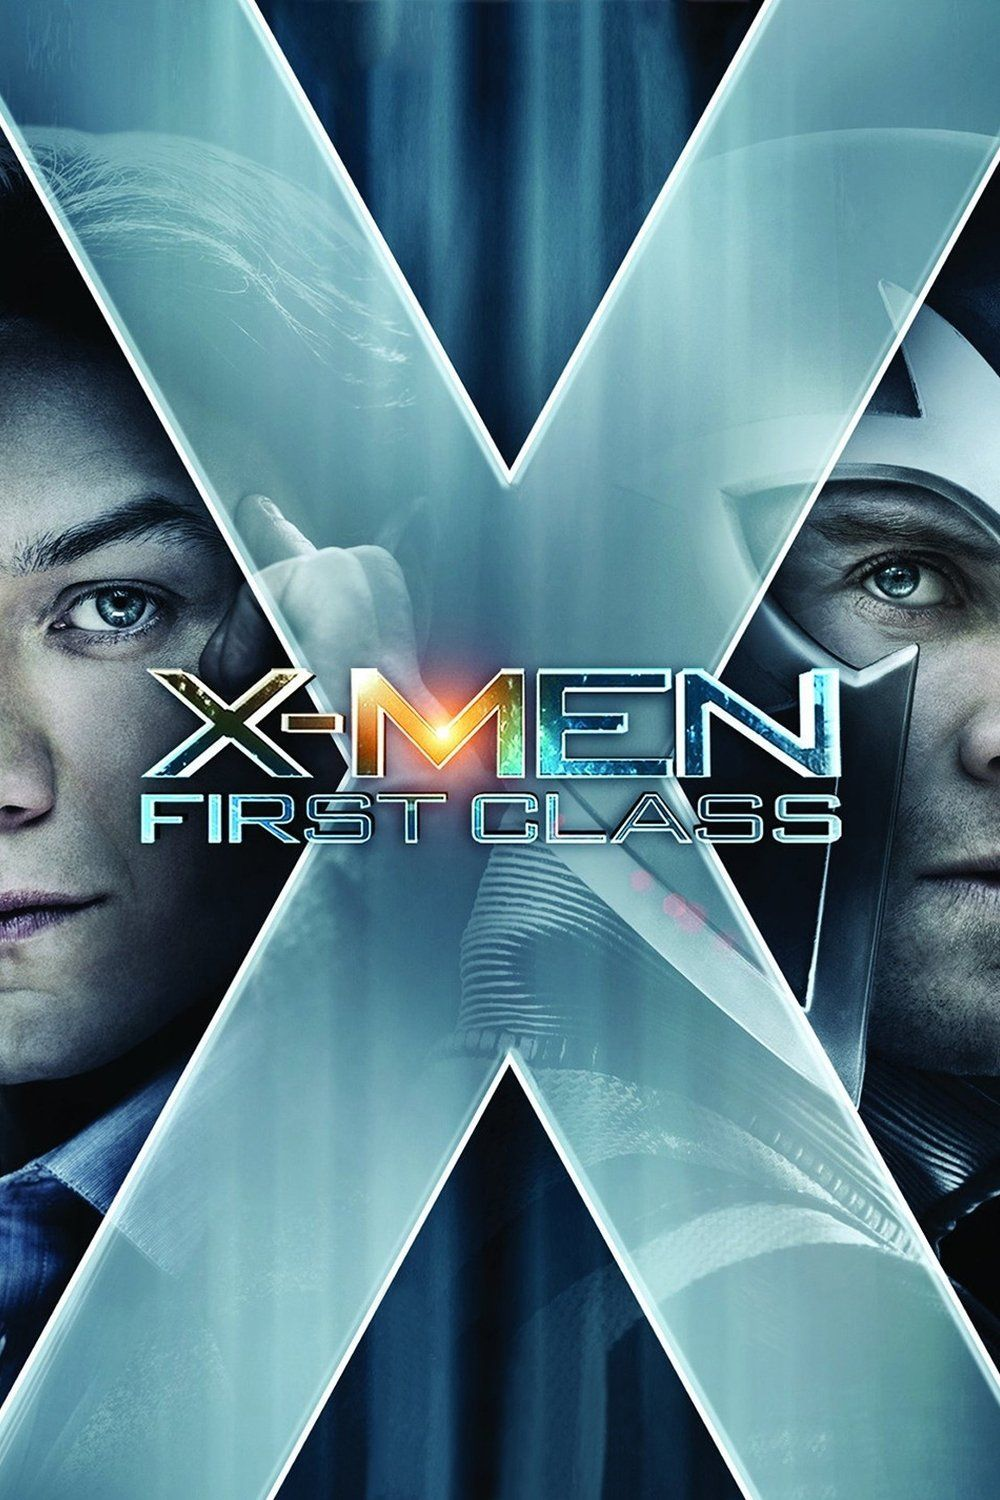 X Men First Class Online Movie Streaming Stream X Men First Class Online Xmenfirstclass Onlinemoviestreaming Co Uk Shows Man Movies X Men Good Movies